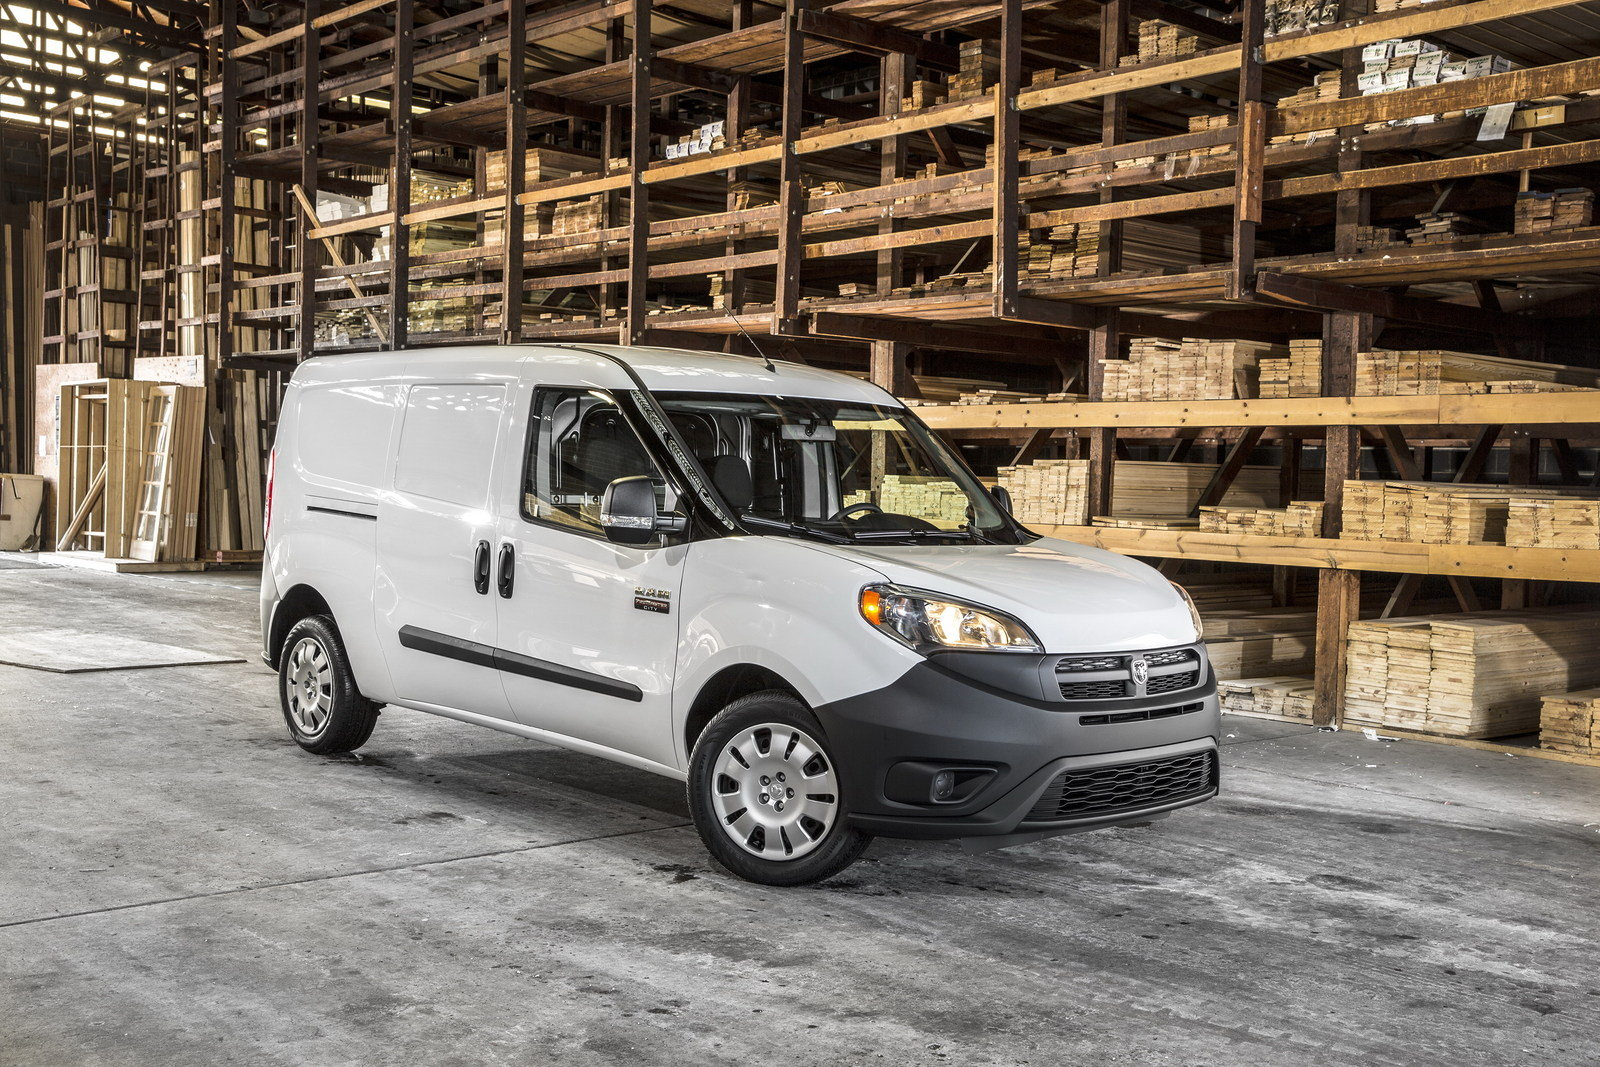 2015 ram promaster city picture 557874 car review top speed. Black Bedroom Furniture Sets. Home Design Ideas